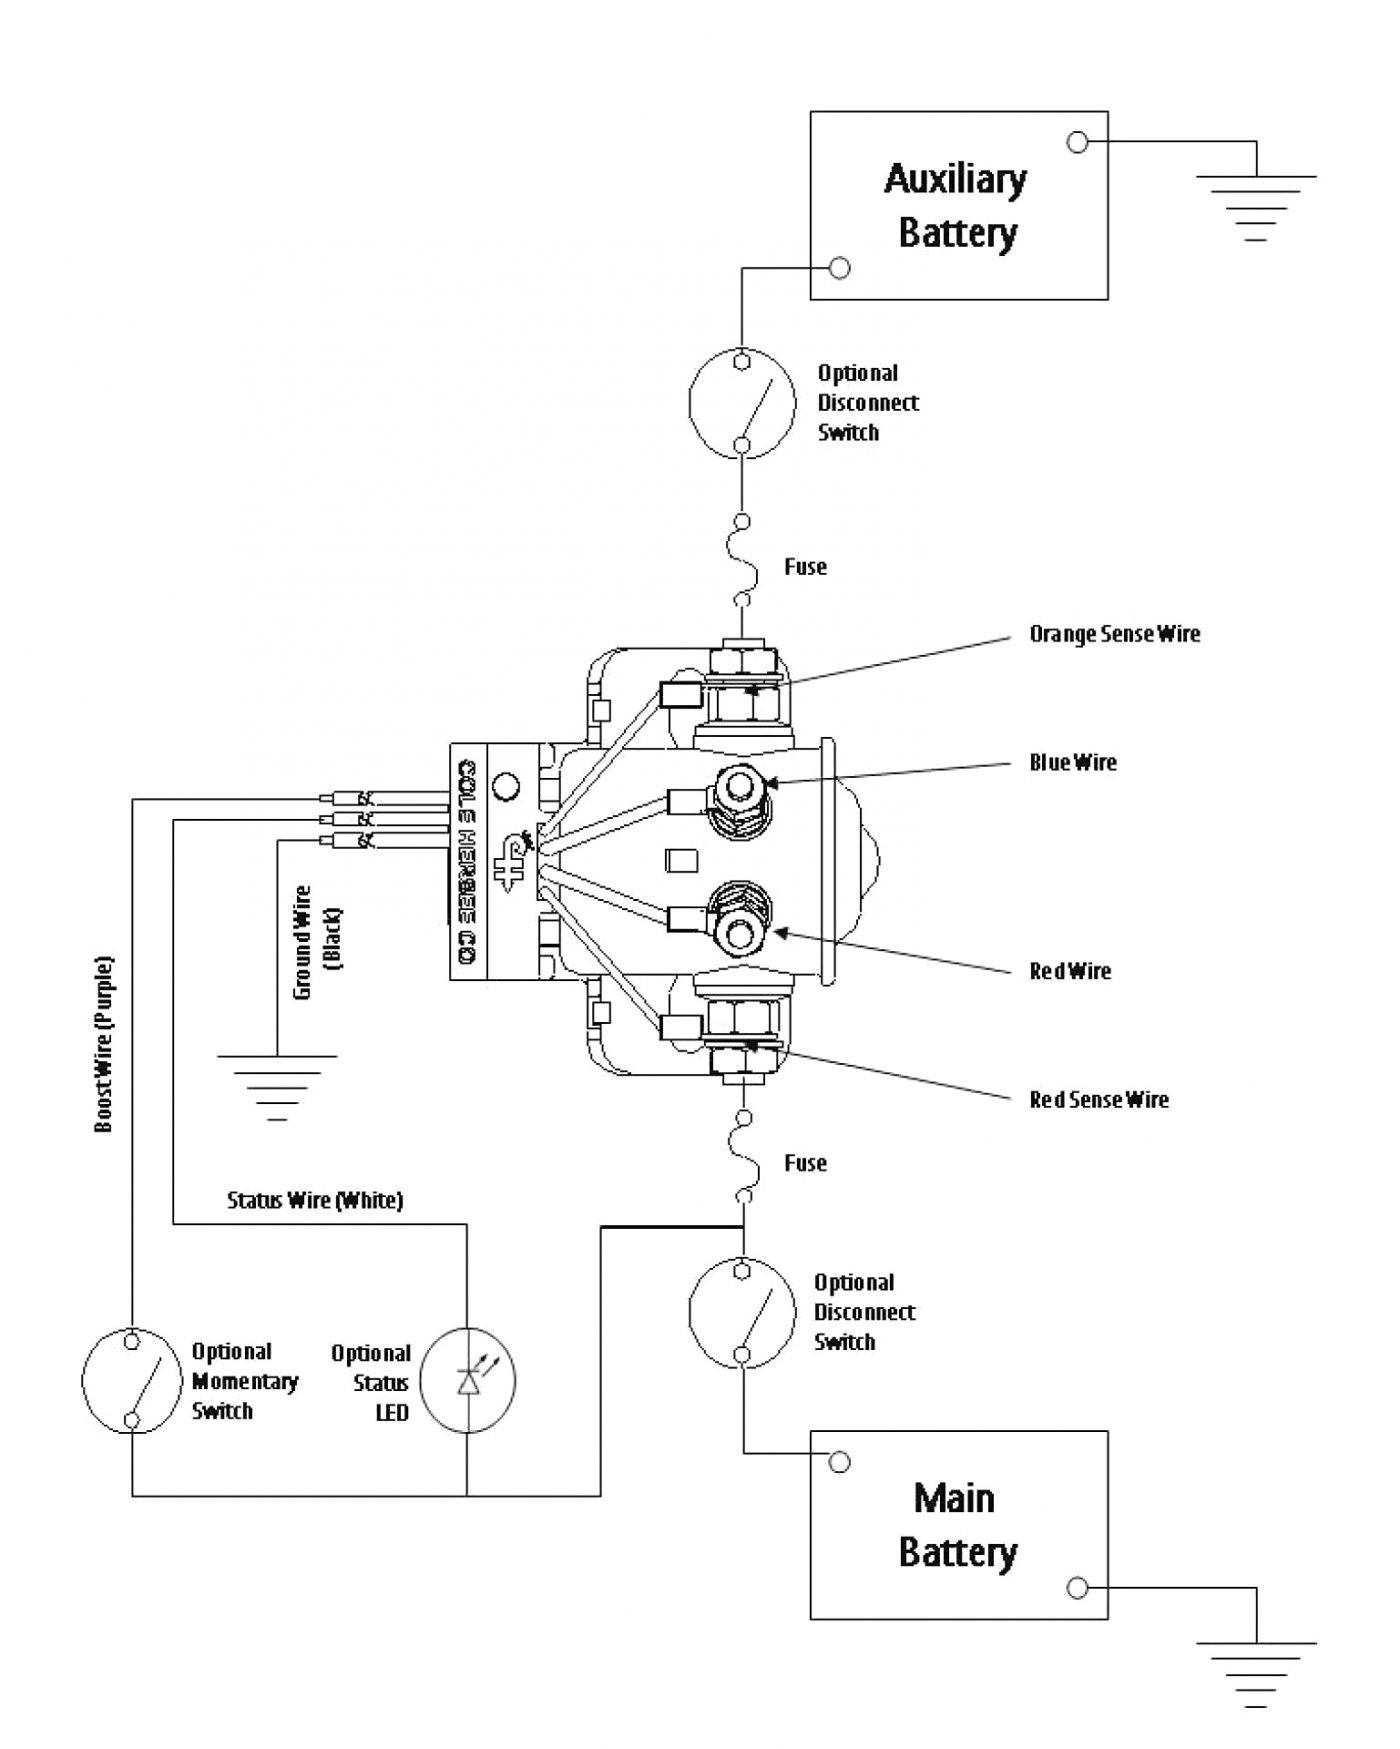 trinary switch wiring diagram with two electric fans easy wiring rh cousot co a/c trinary switch wiring diagram